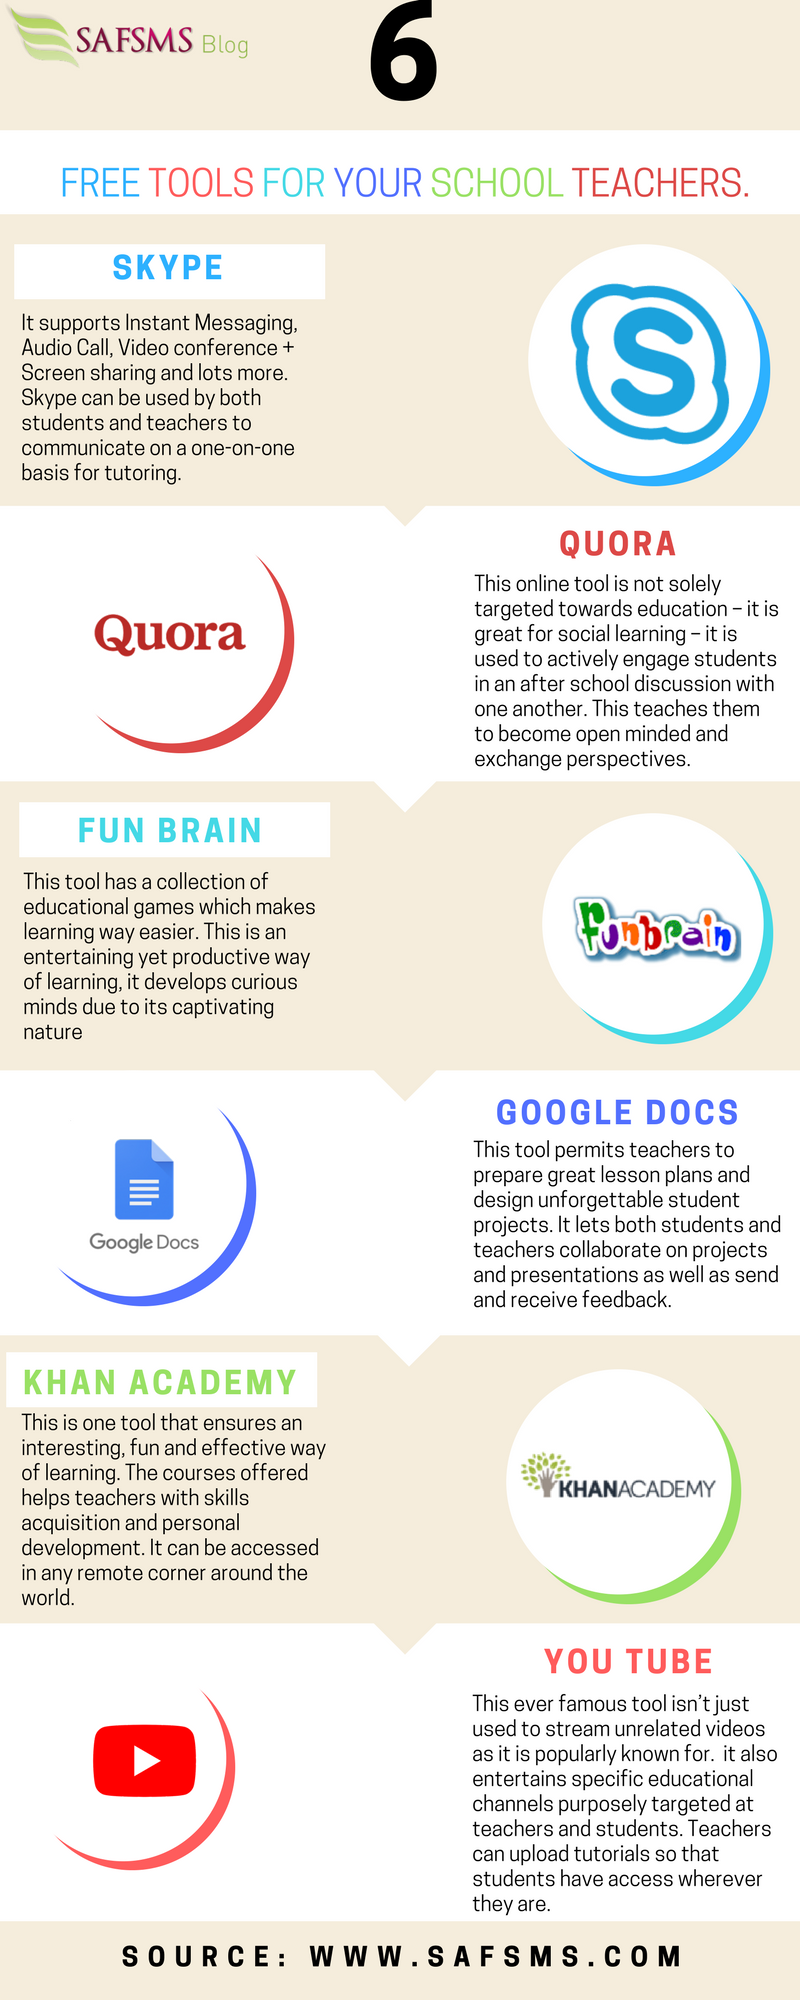 free-tools-school-teachers-infographic-plaza